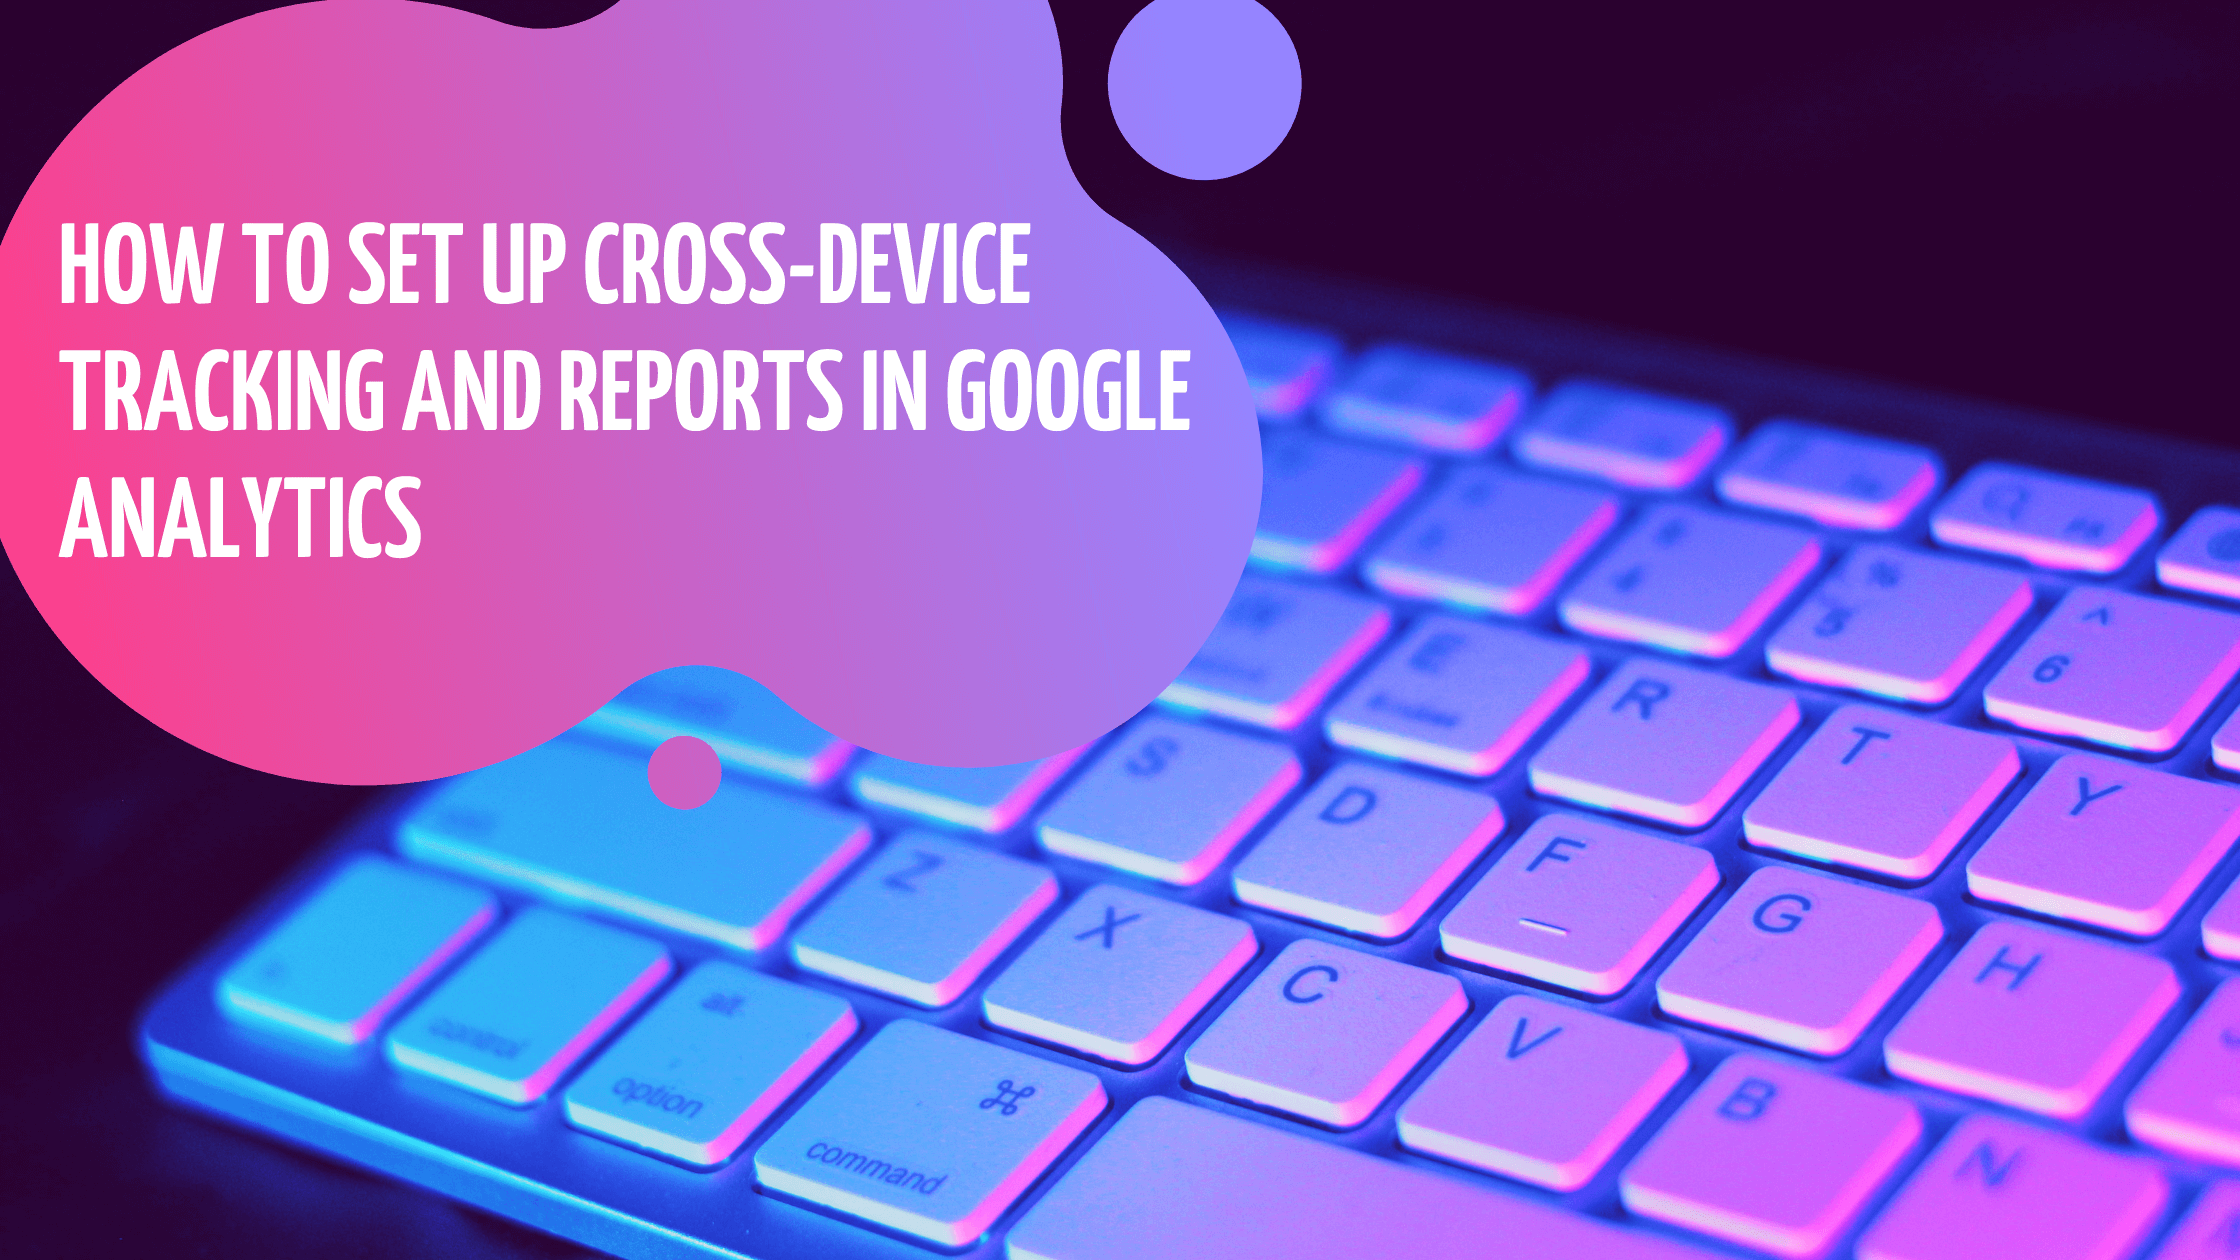 How to Set Up Cross-Device Tracking and Reports in Google Analytics